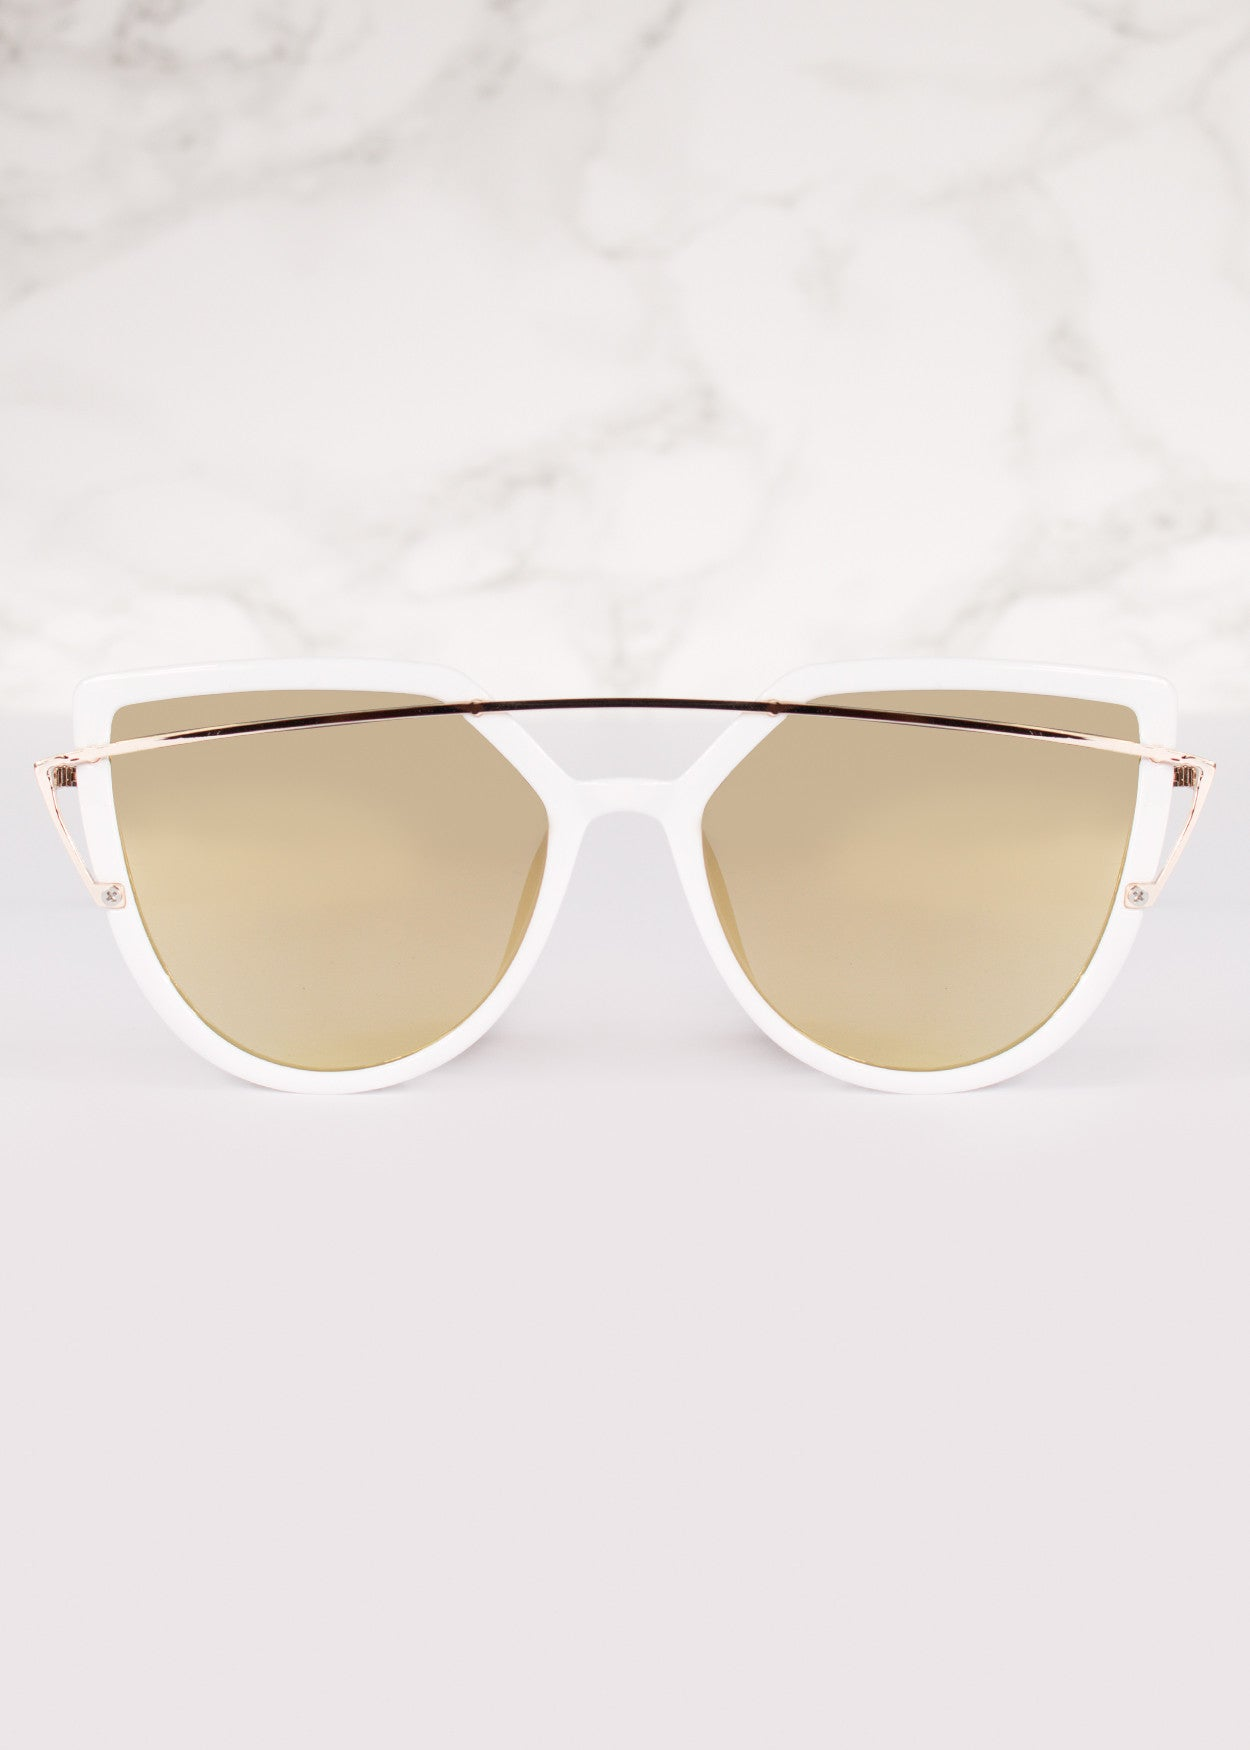 Evolution Mirrored Sunnies